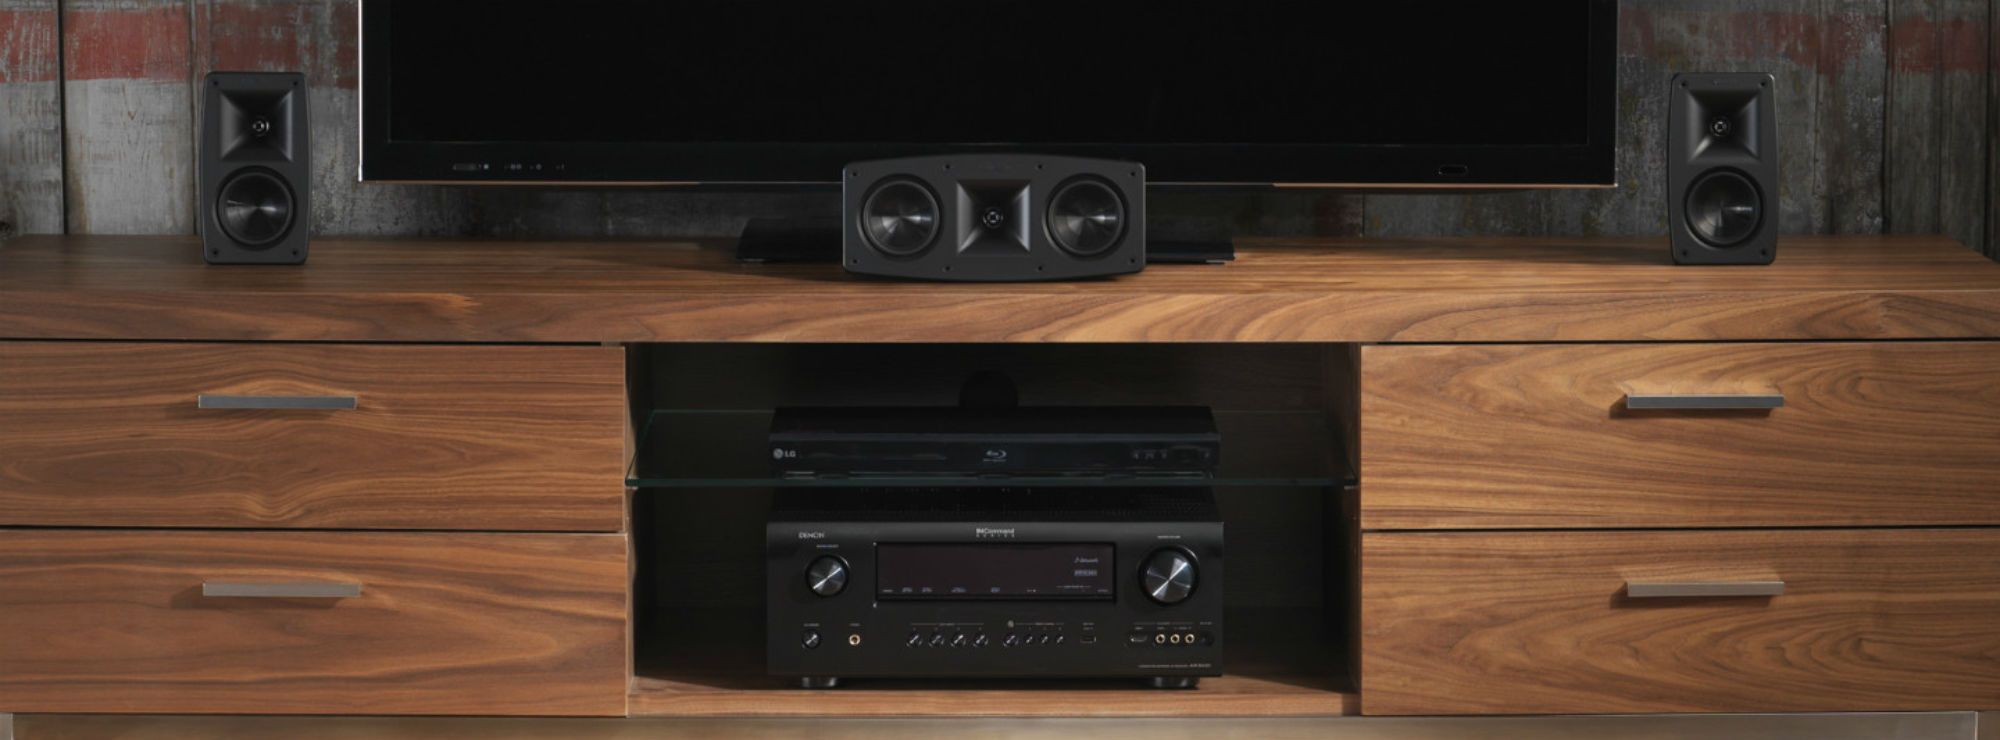 receiver denon, HiFi audio components   IN AUSTIN,  LAGO VISTA,  SPICEWOOD,  BEE CAVE, LAKEWAY,  DRIPPING SPRINGS, WIMBERLY, MARBLE FALLS, WEST LAKE HILLS,  FREDERICKSBURG , HORSESHOE BAY,  BELTON